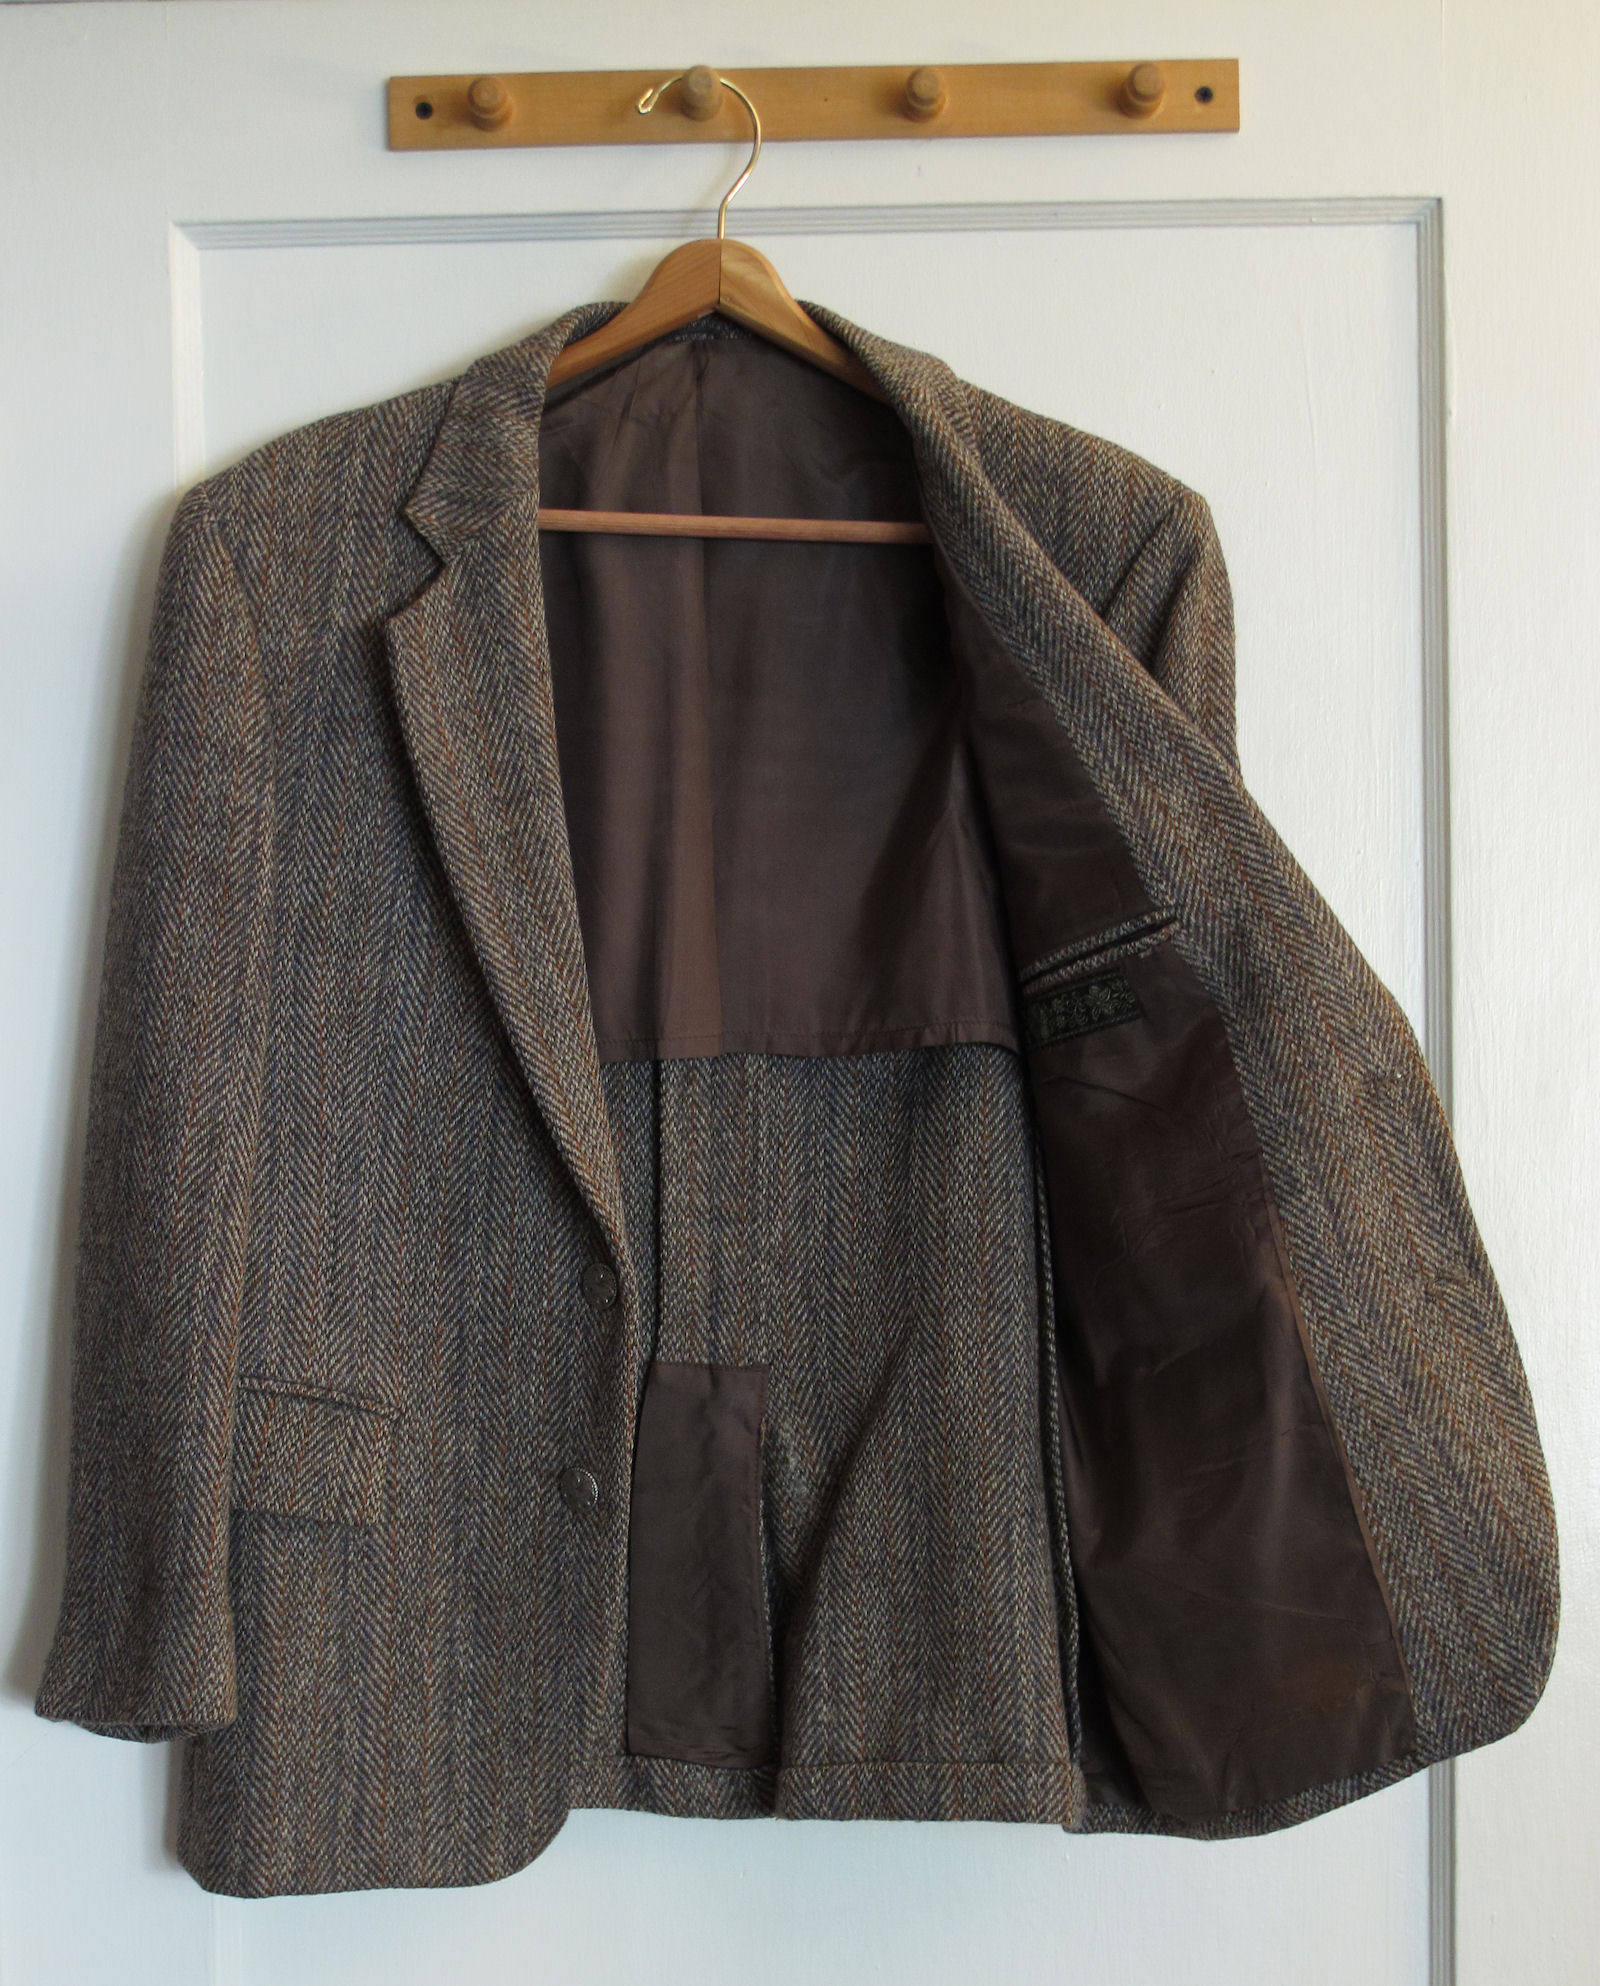 ad081349a Sport coat - Wikipedia